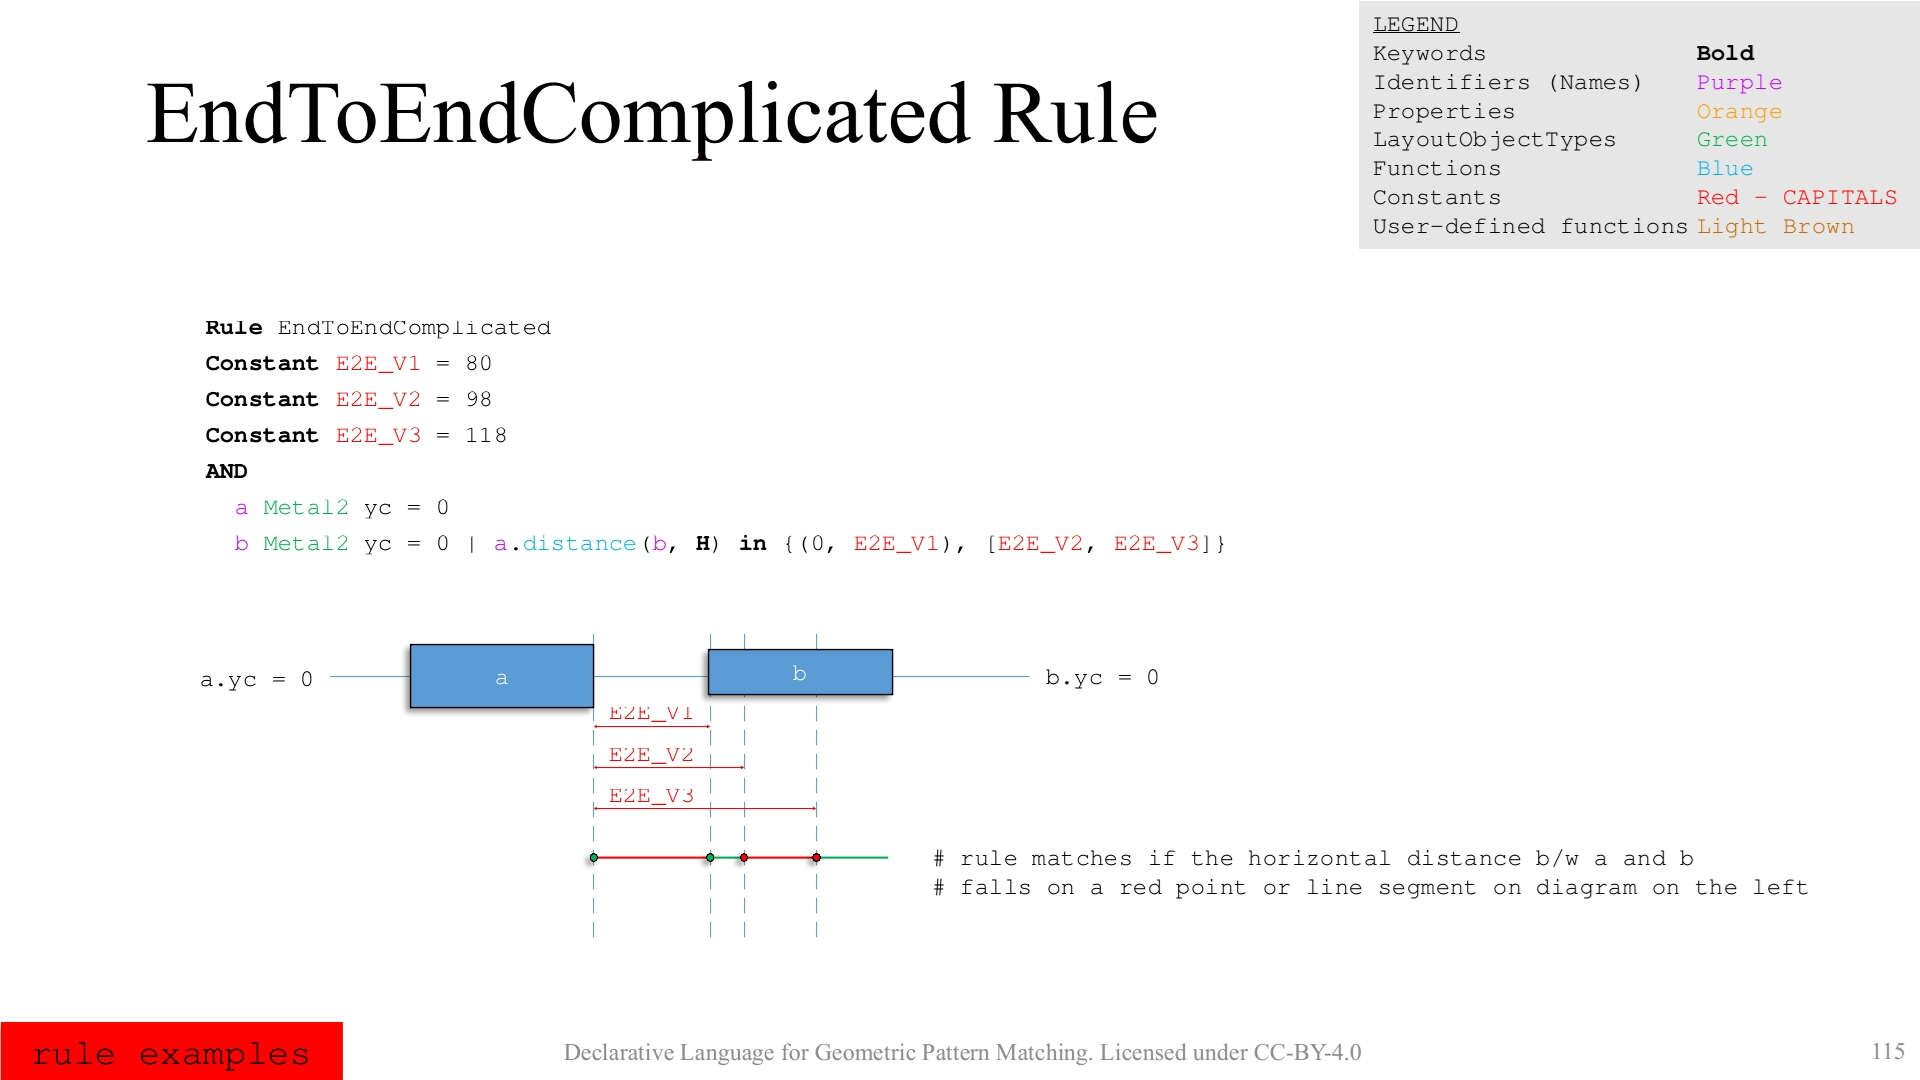 EndToEndComplicated Rule